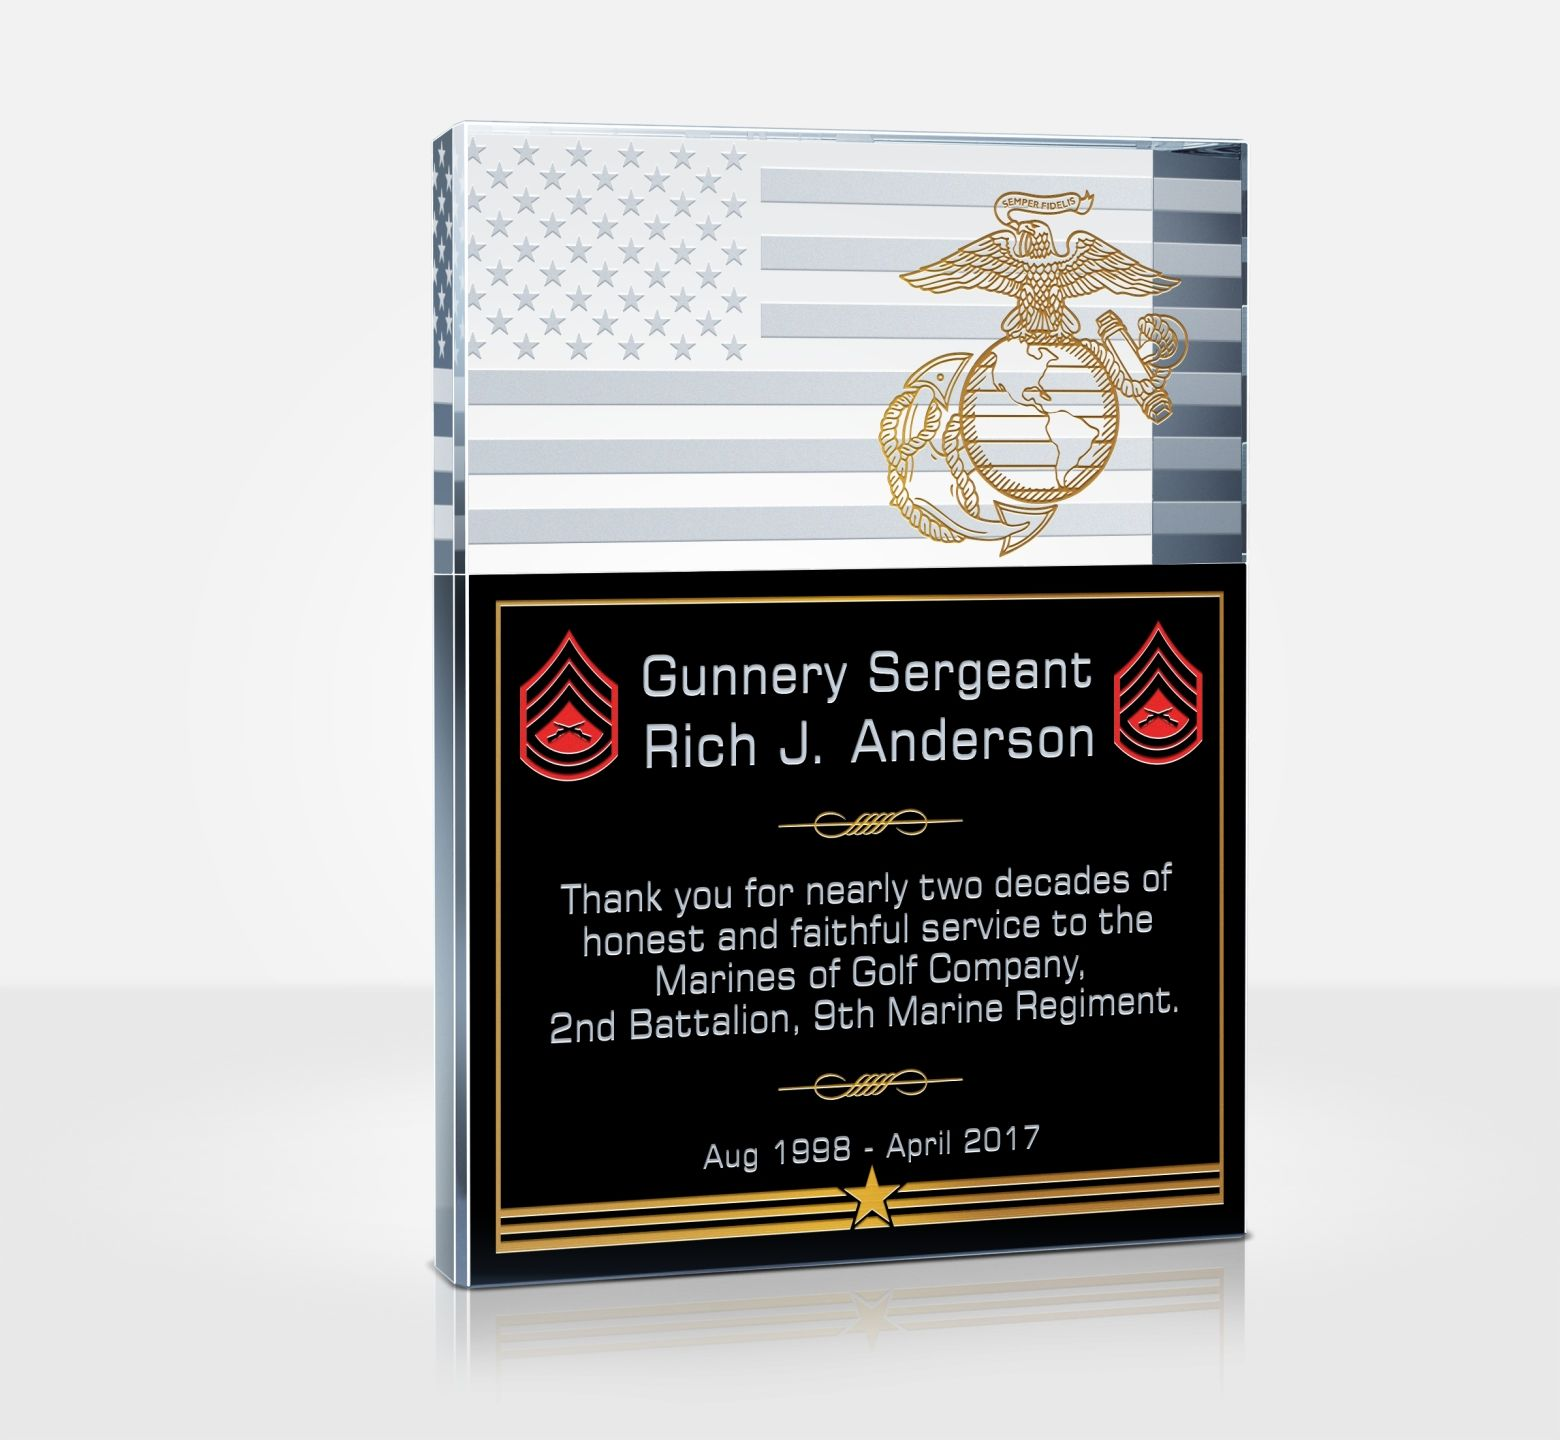 unique military service plaques and thank you quotes | diy awards